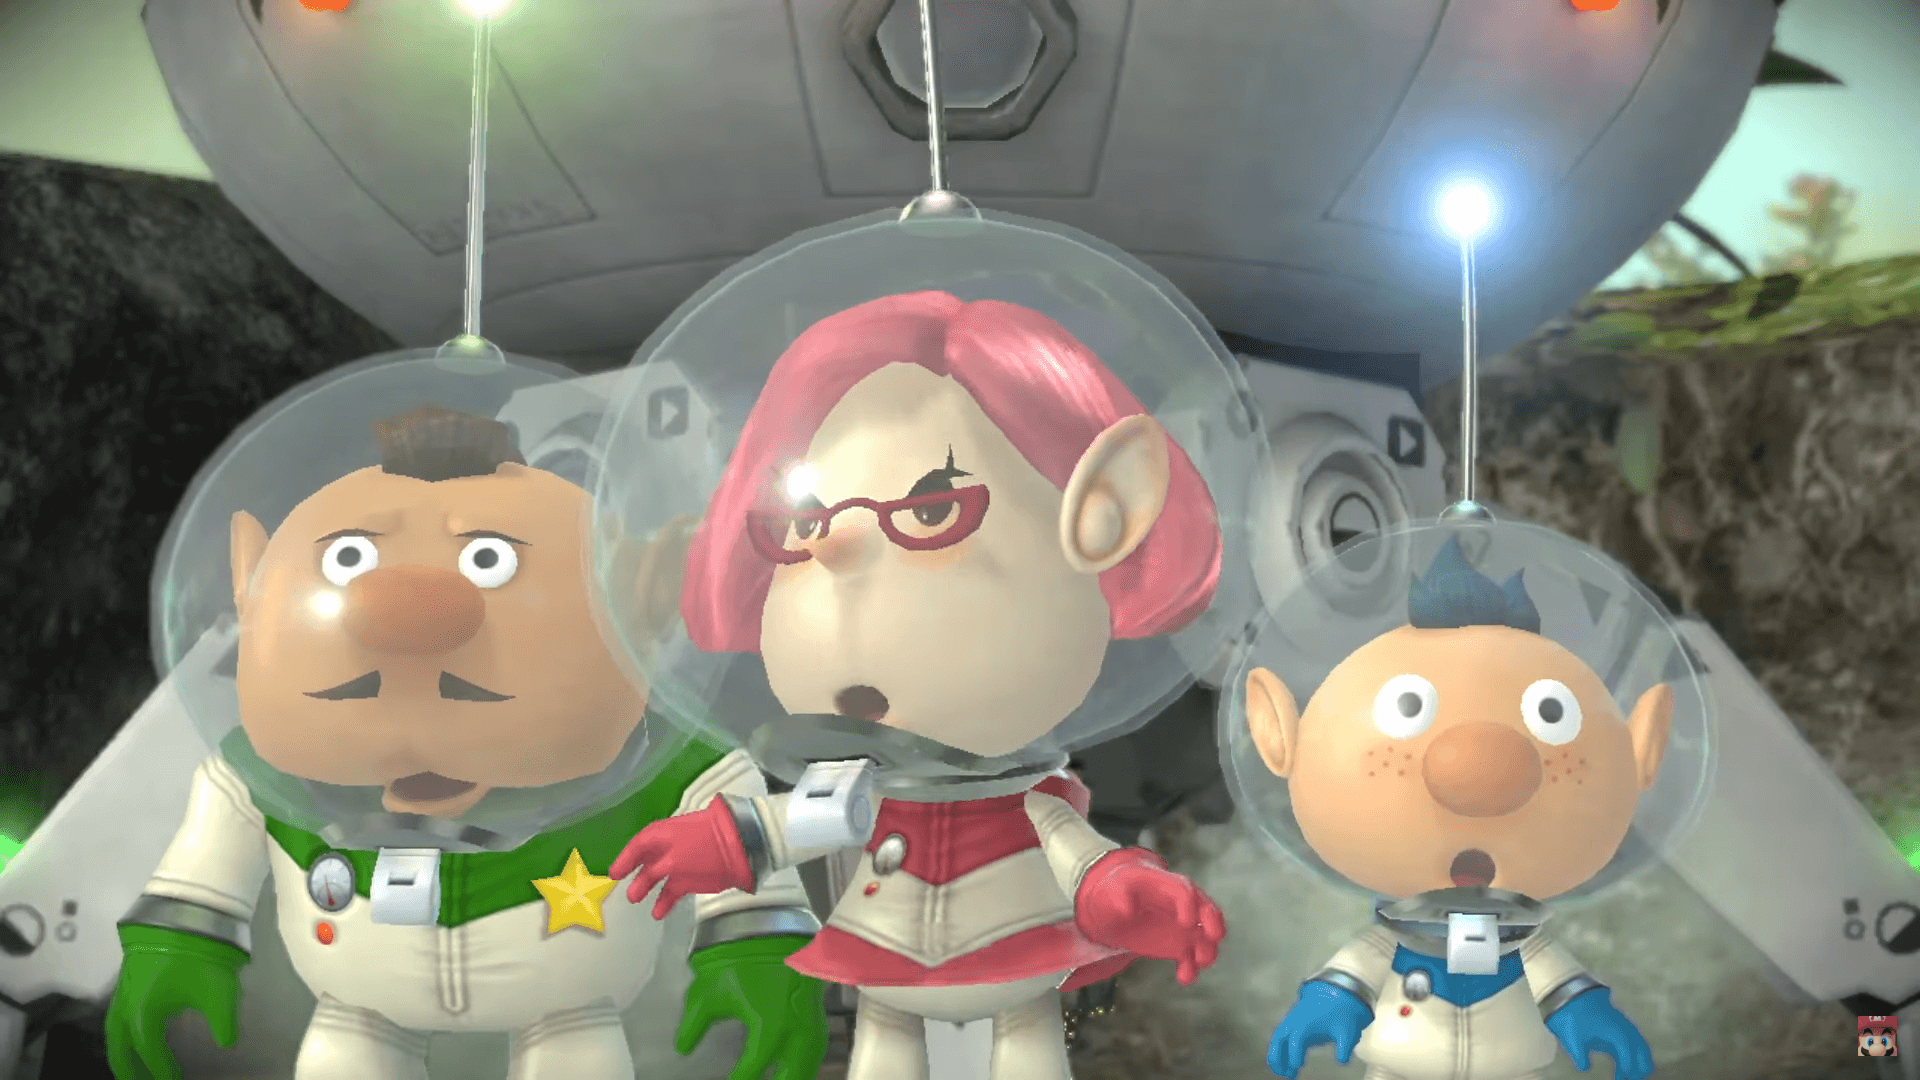 Pikmin 3 Deluxe Revealed Including all DLC and New Content